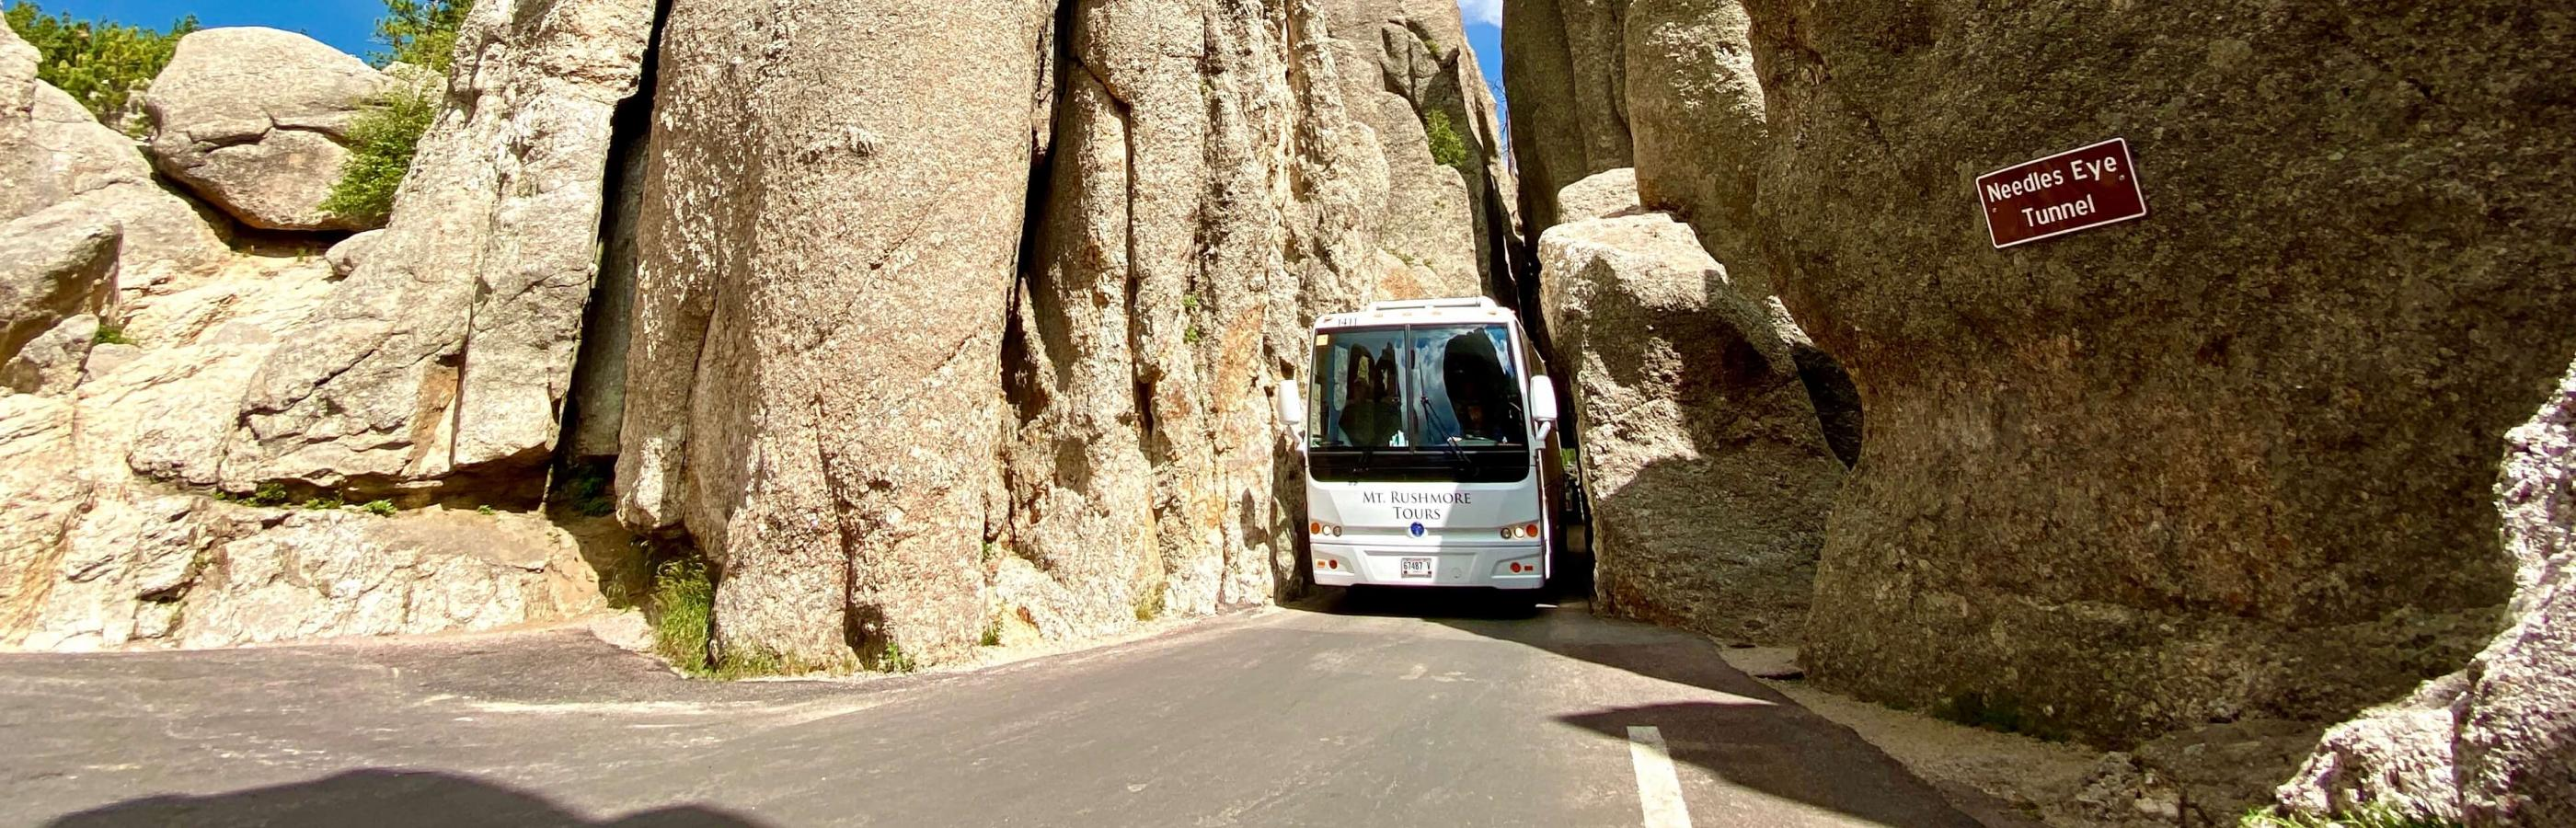 Mount Rushmore Tour Bus Driving through a tunnel at the Needles Highway